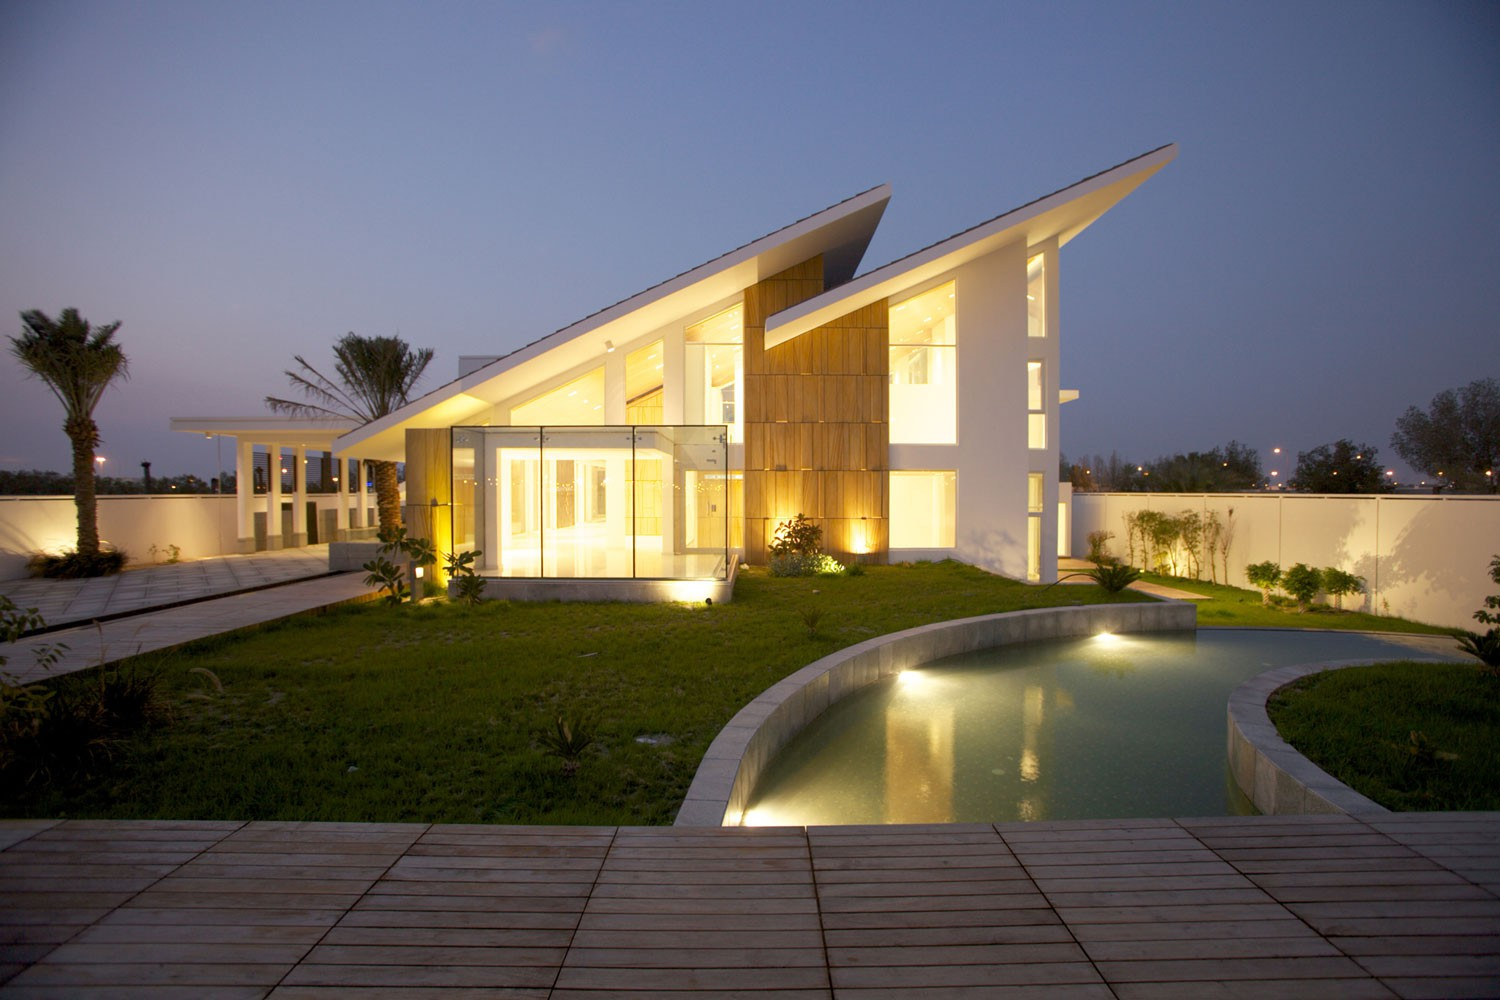 Beauty Modern Roof Designs Houses House Design